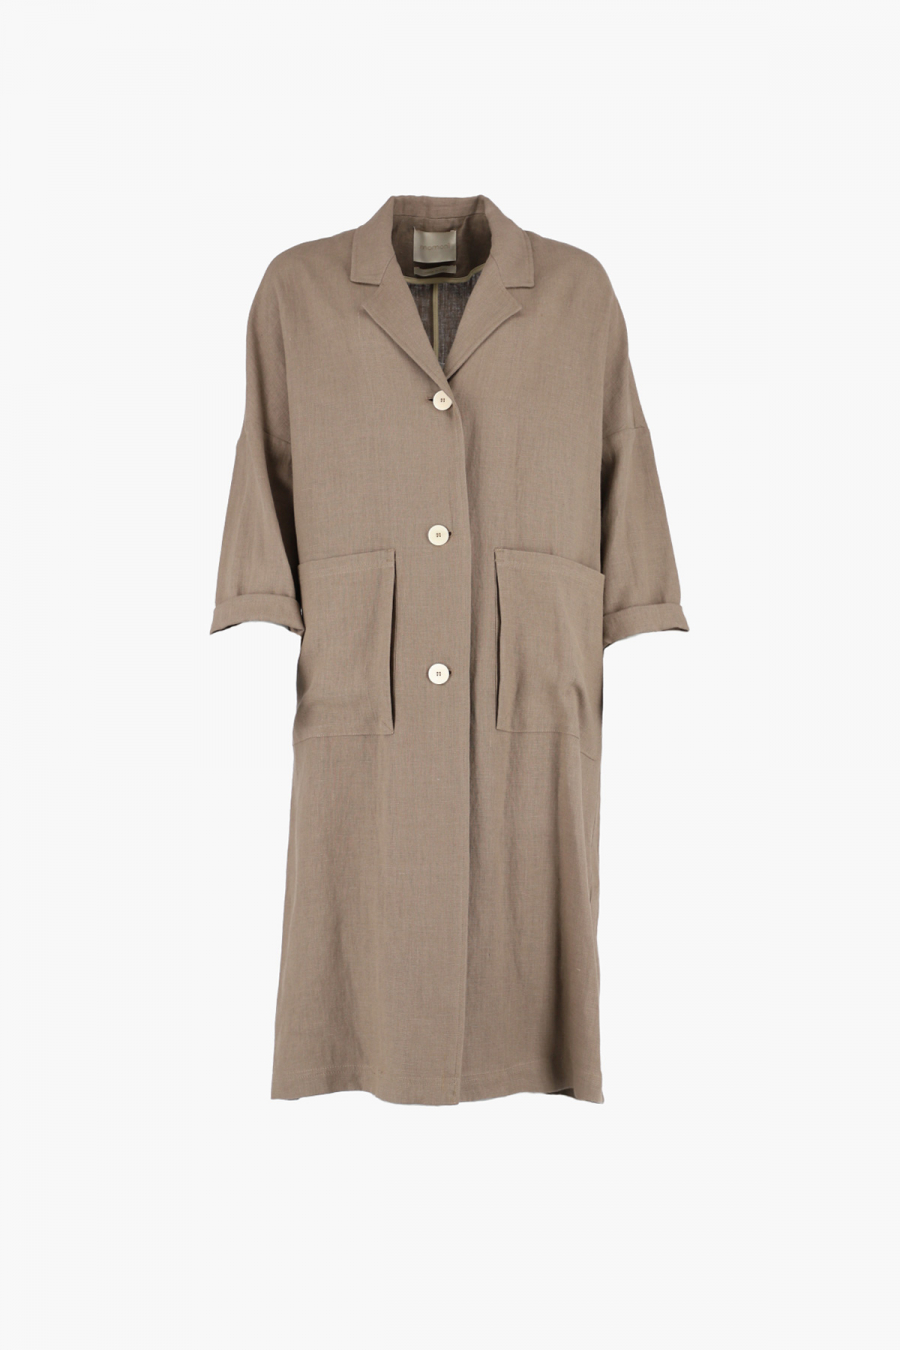 COURMAYER COAT